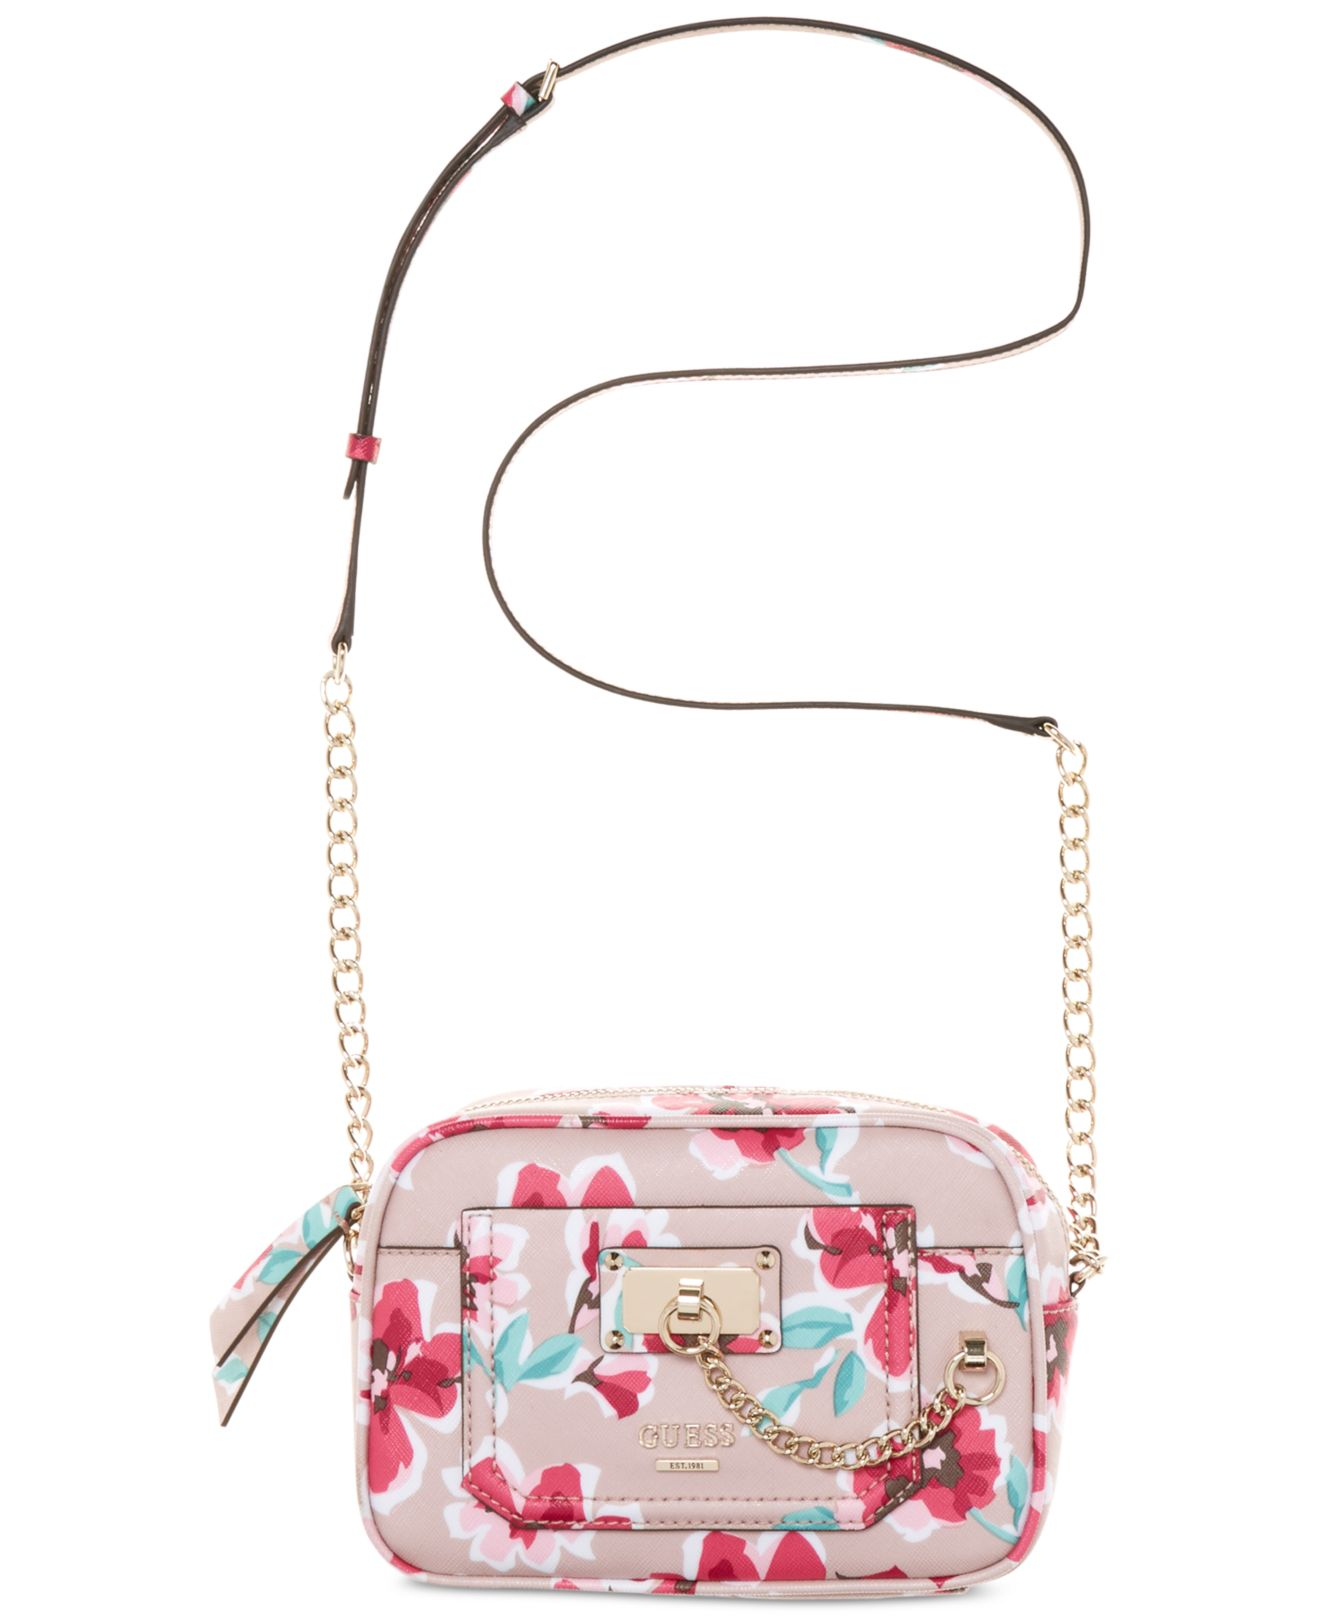 d6f01d8a71 Lyst - Guess Forget Me Not Crossbody Camera Bag in Pink